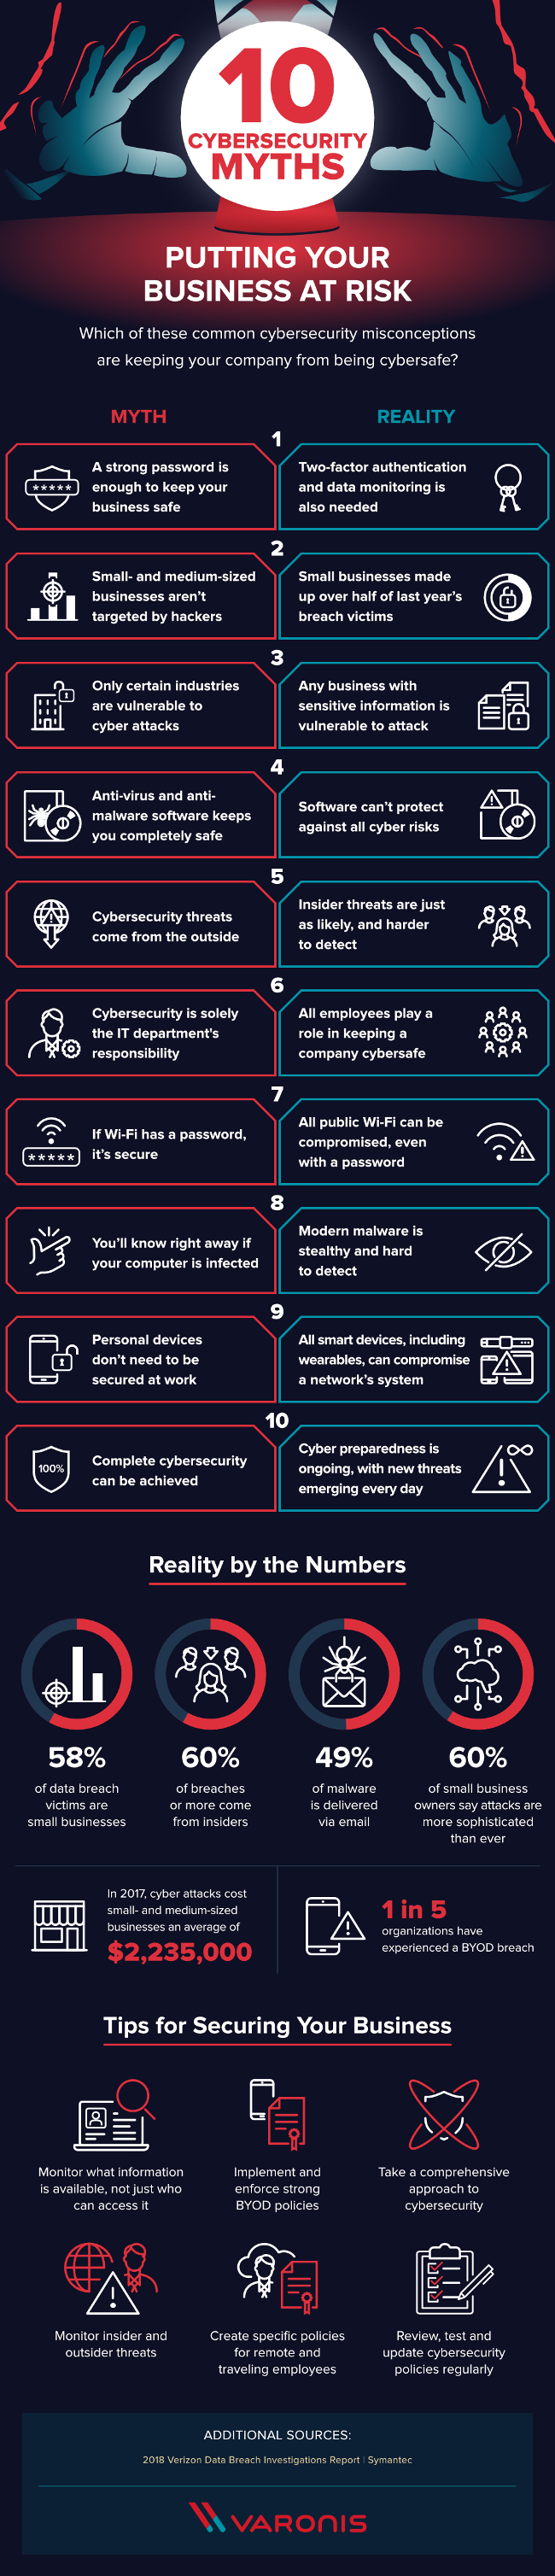 Top 10 Cybersecurity Myths [Infographic]